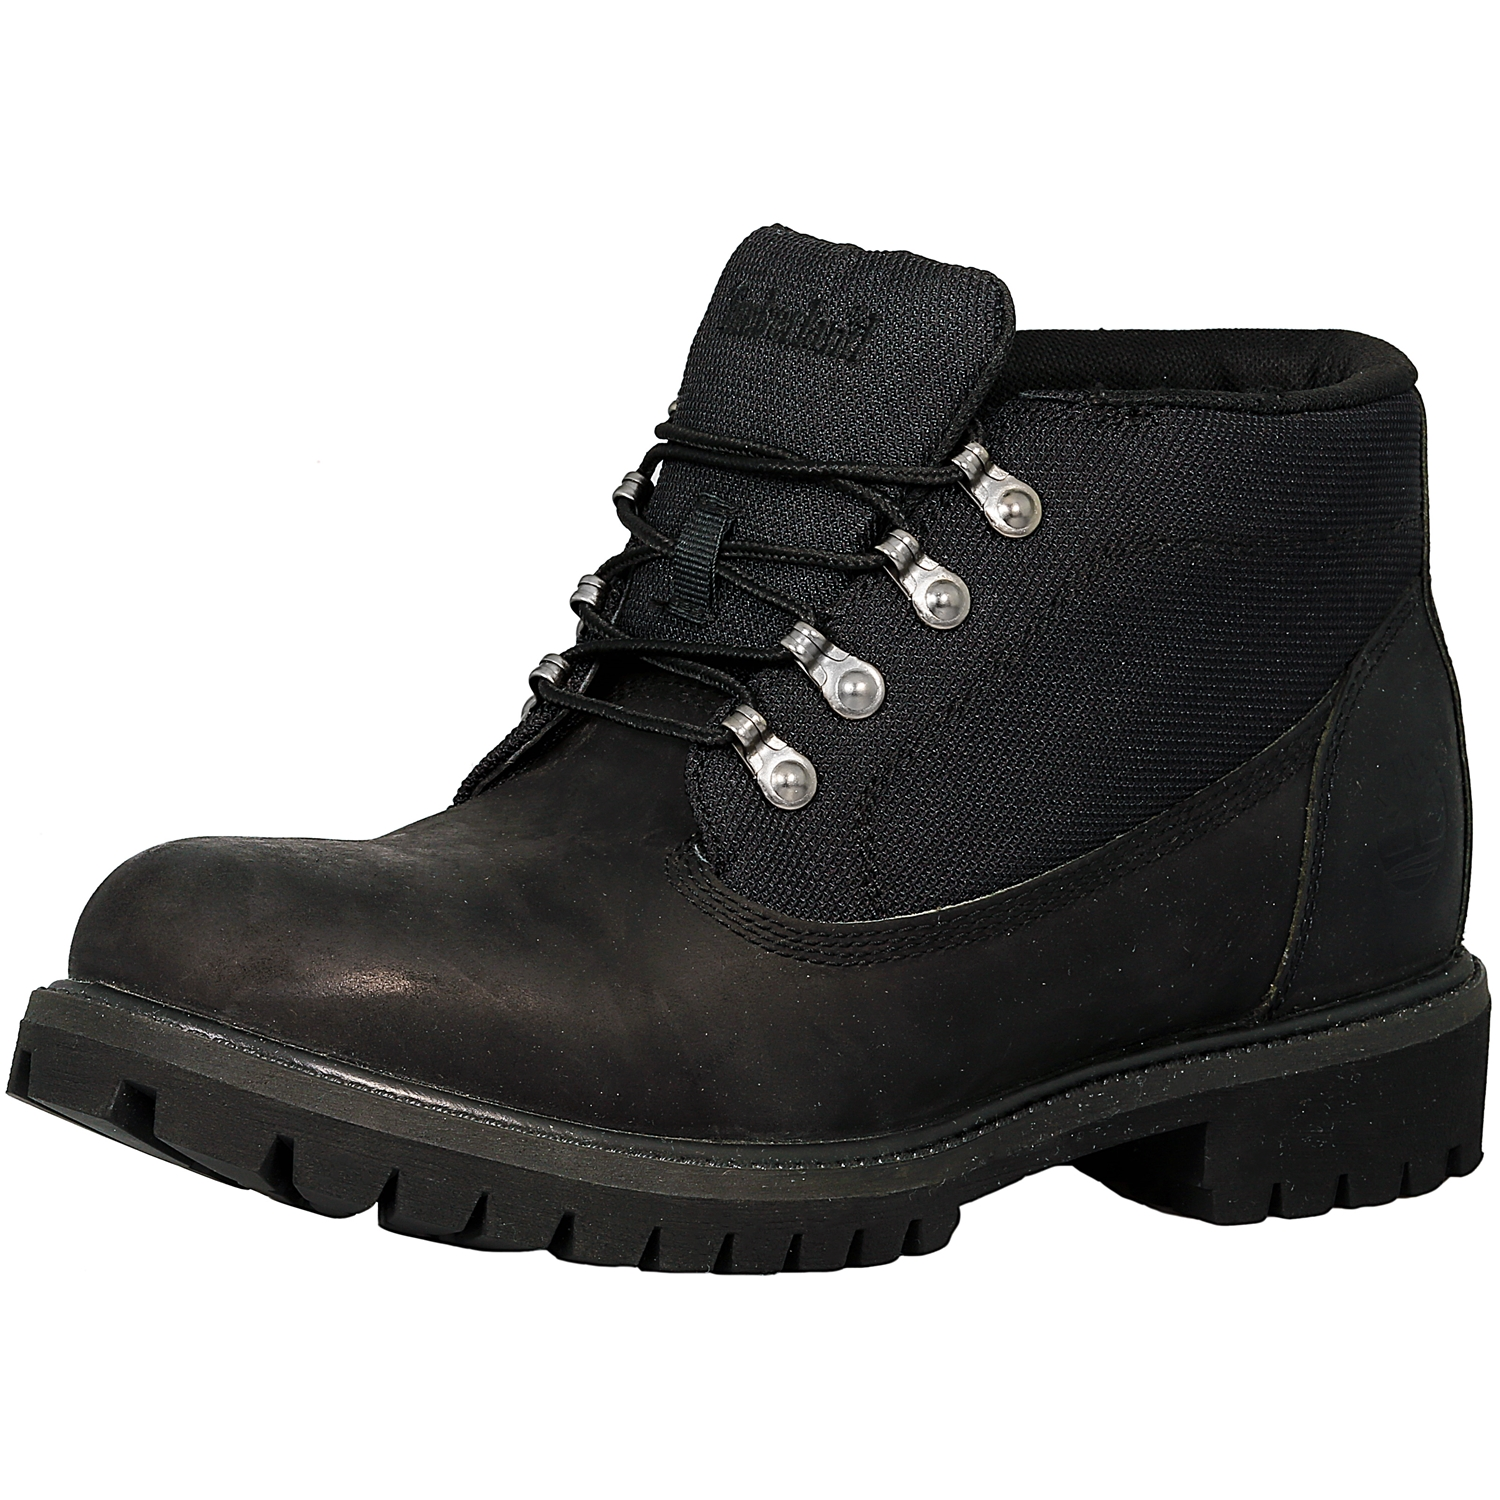 Timberland Men's Earthkeepers Campsite Leather Textile Black High-Top Leather Hiking Boot 8.5M by Timberland